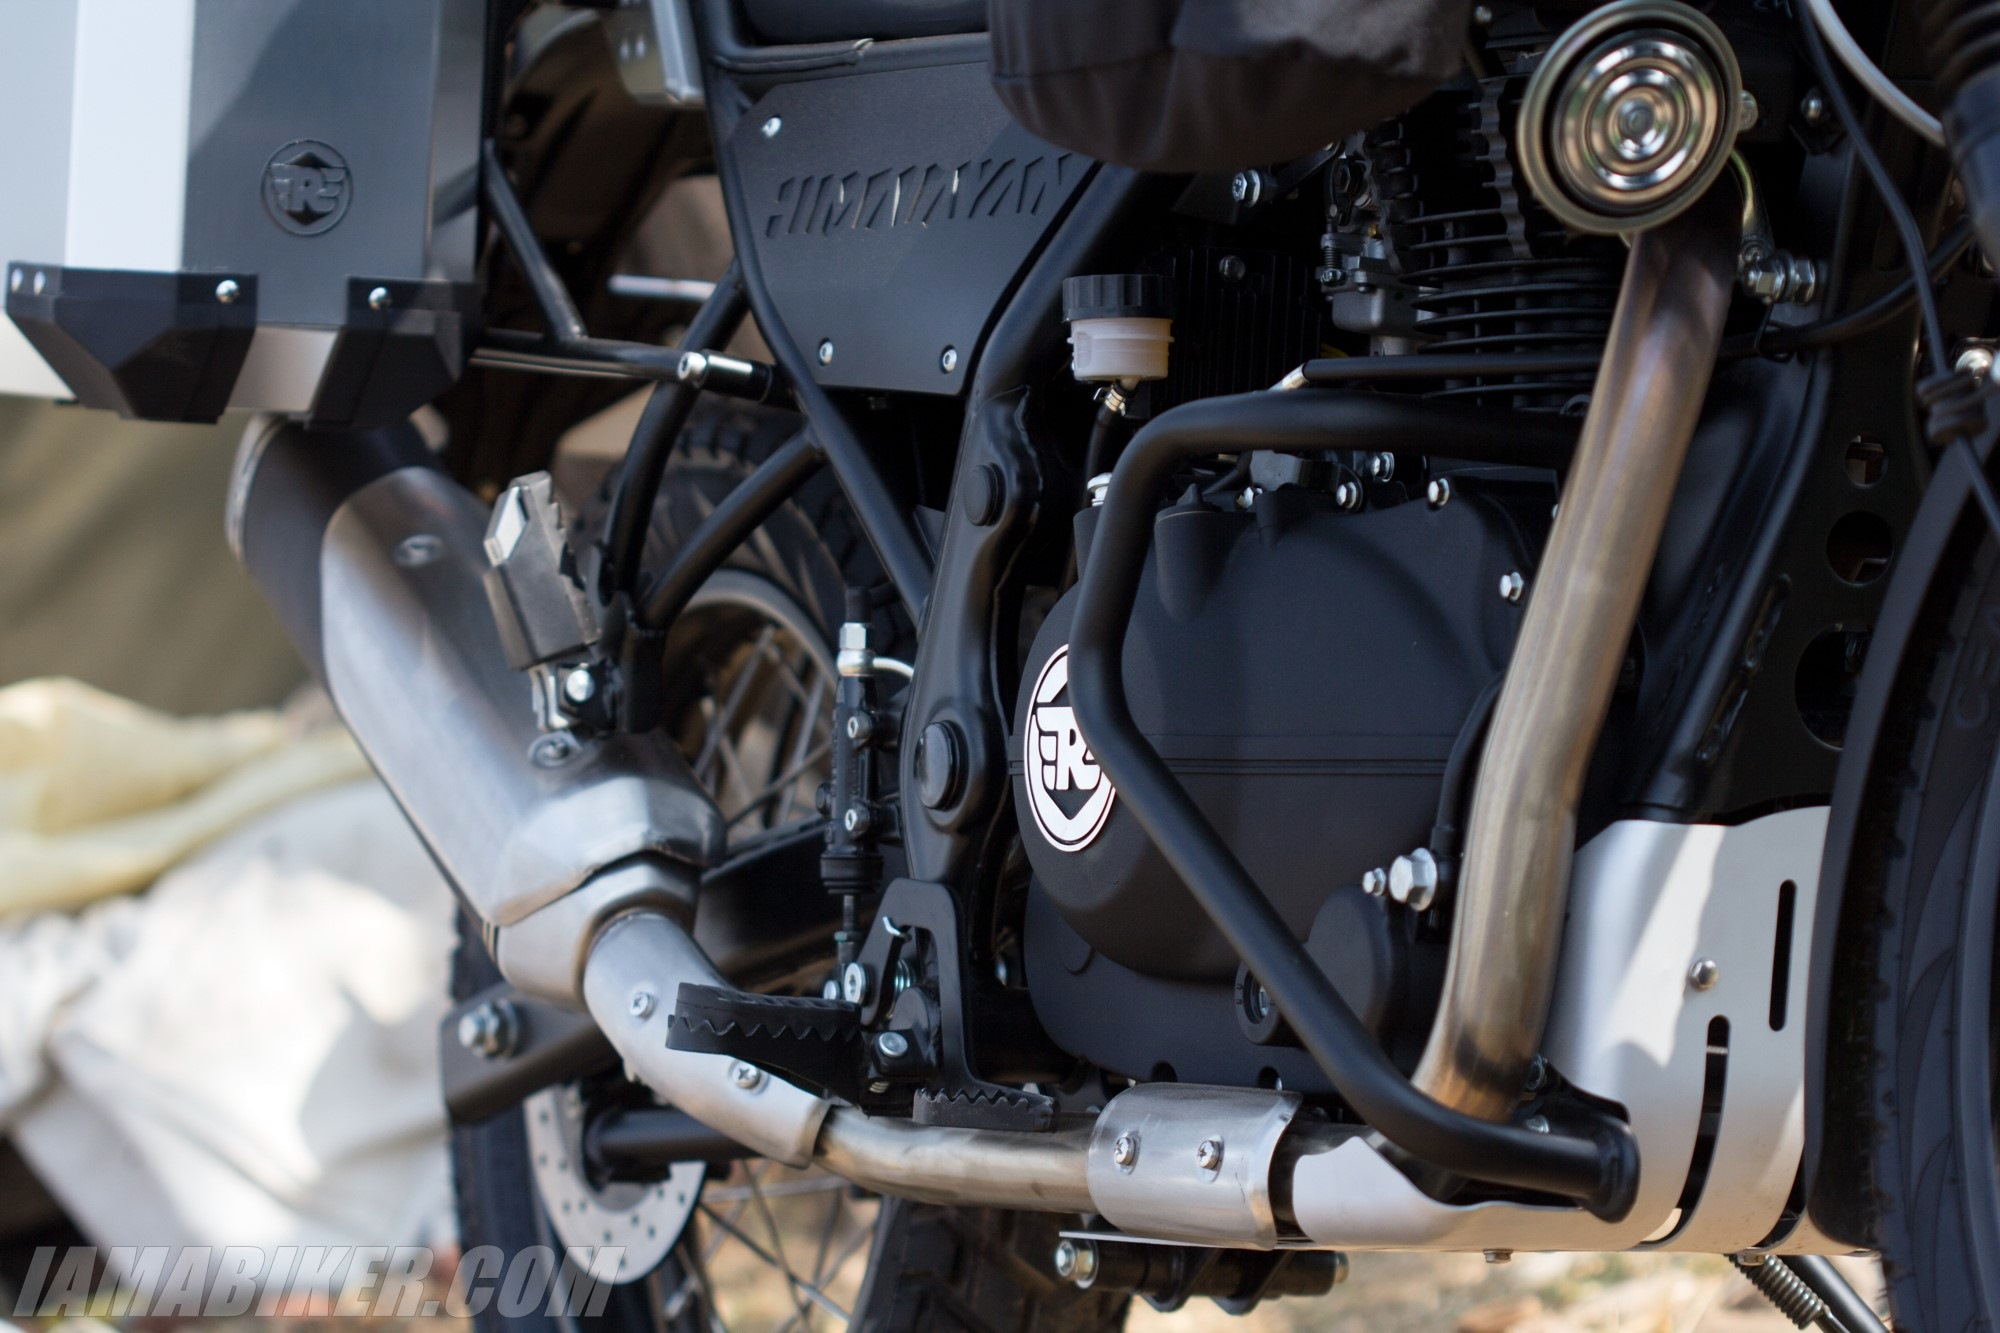 Royal Enfield Himalayan exhaust silencer